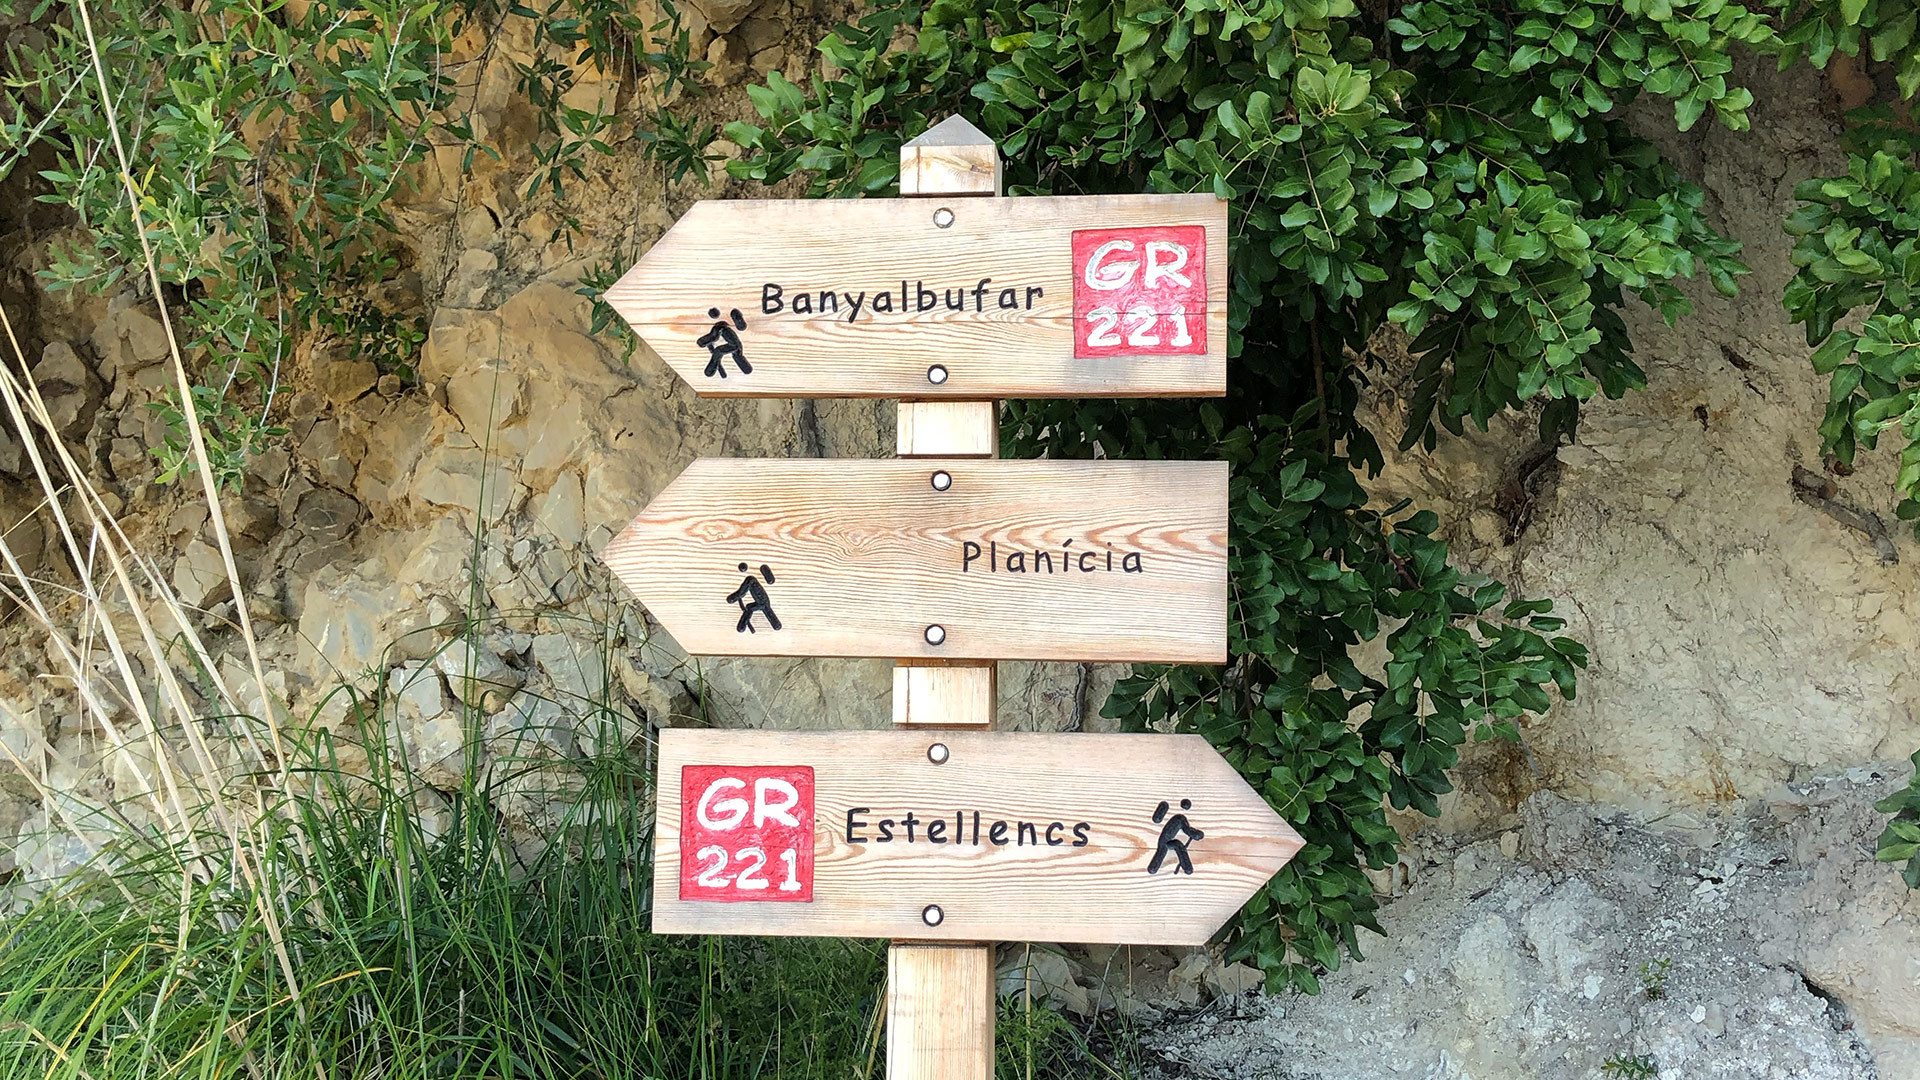 Hike signs GR221 Estellencs Banyalbufar photo Adele Chretien